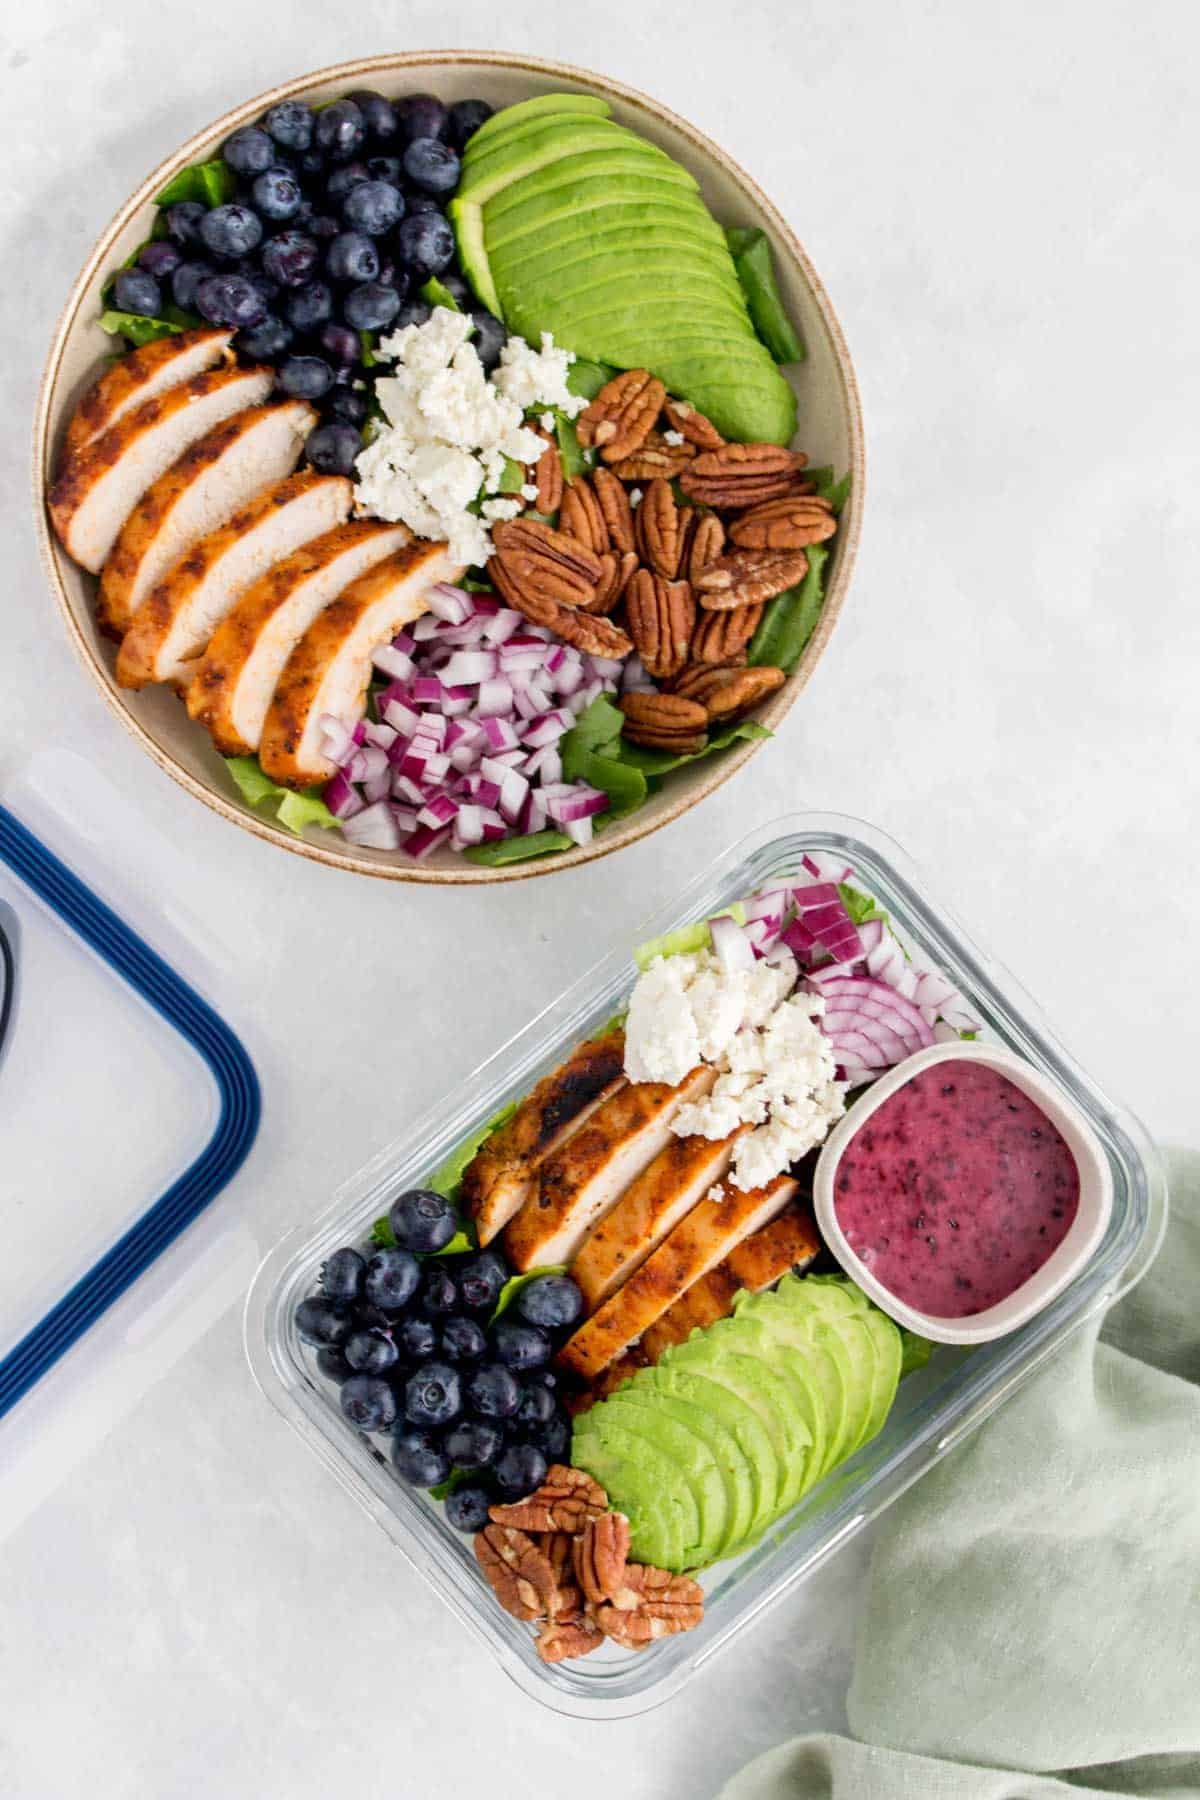 A bowl and a meal prep container with grilled chicken salad with blueberries, pecans, onions, avocado, and goat cheese with a blueberry vinaigrette.